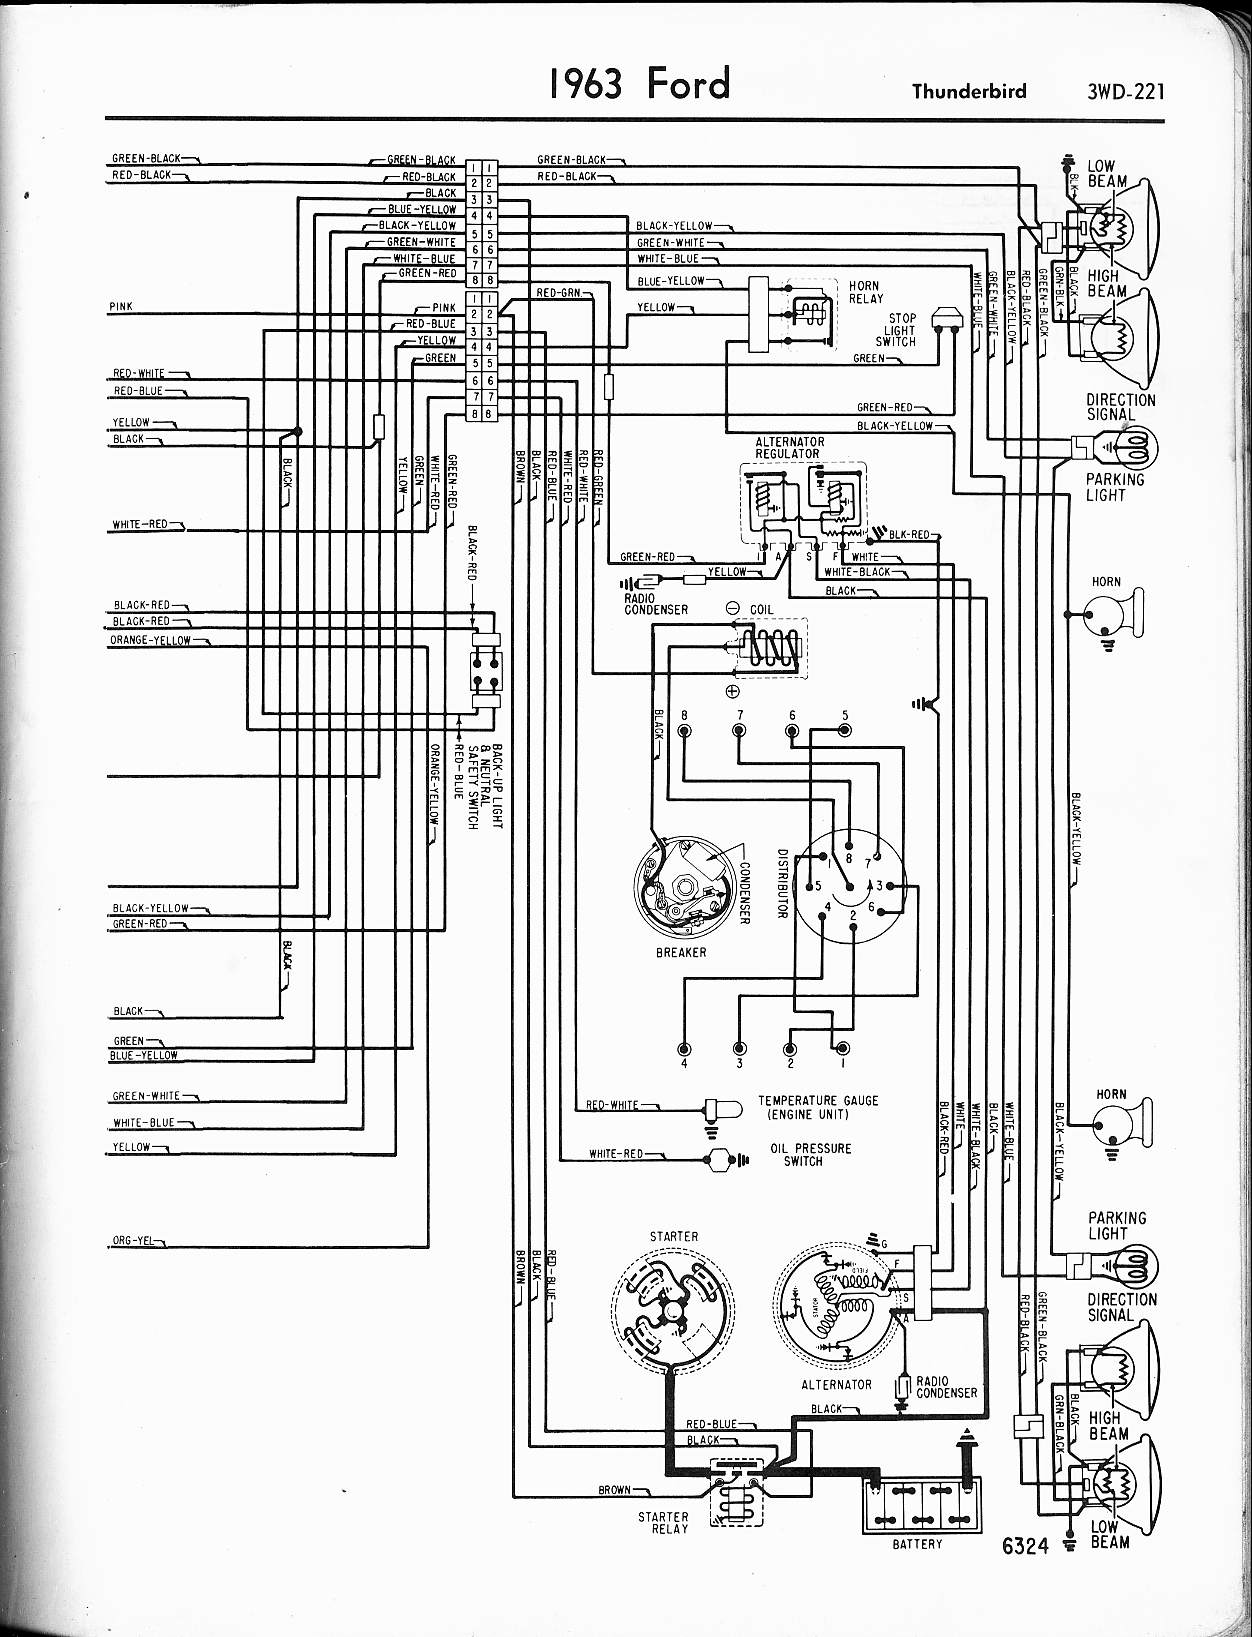 wiring diagrams of 1965 ford thunderbird part 2